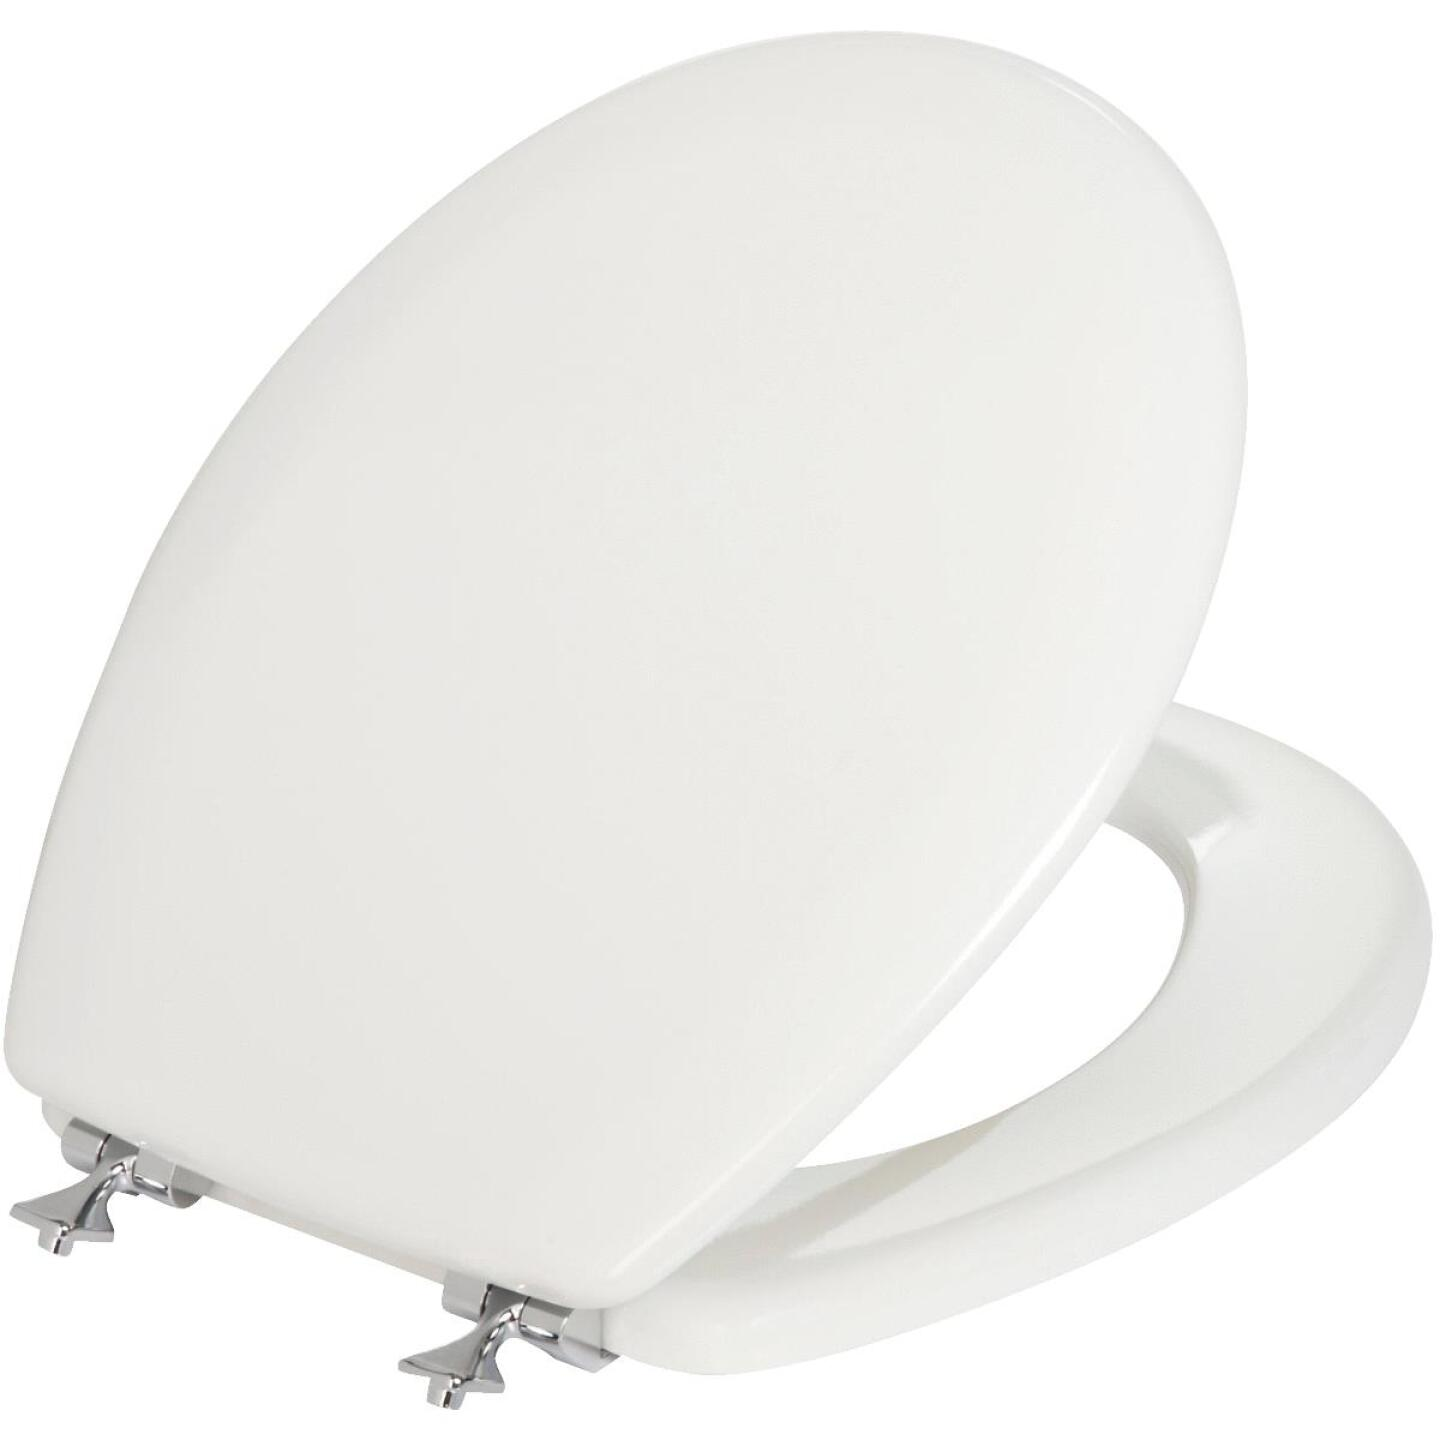 Mayfair Round Closed Front White Toilet Seat with Chrome Hinges Image 1